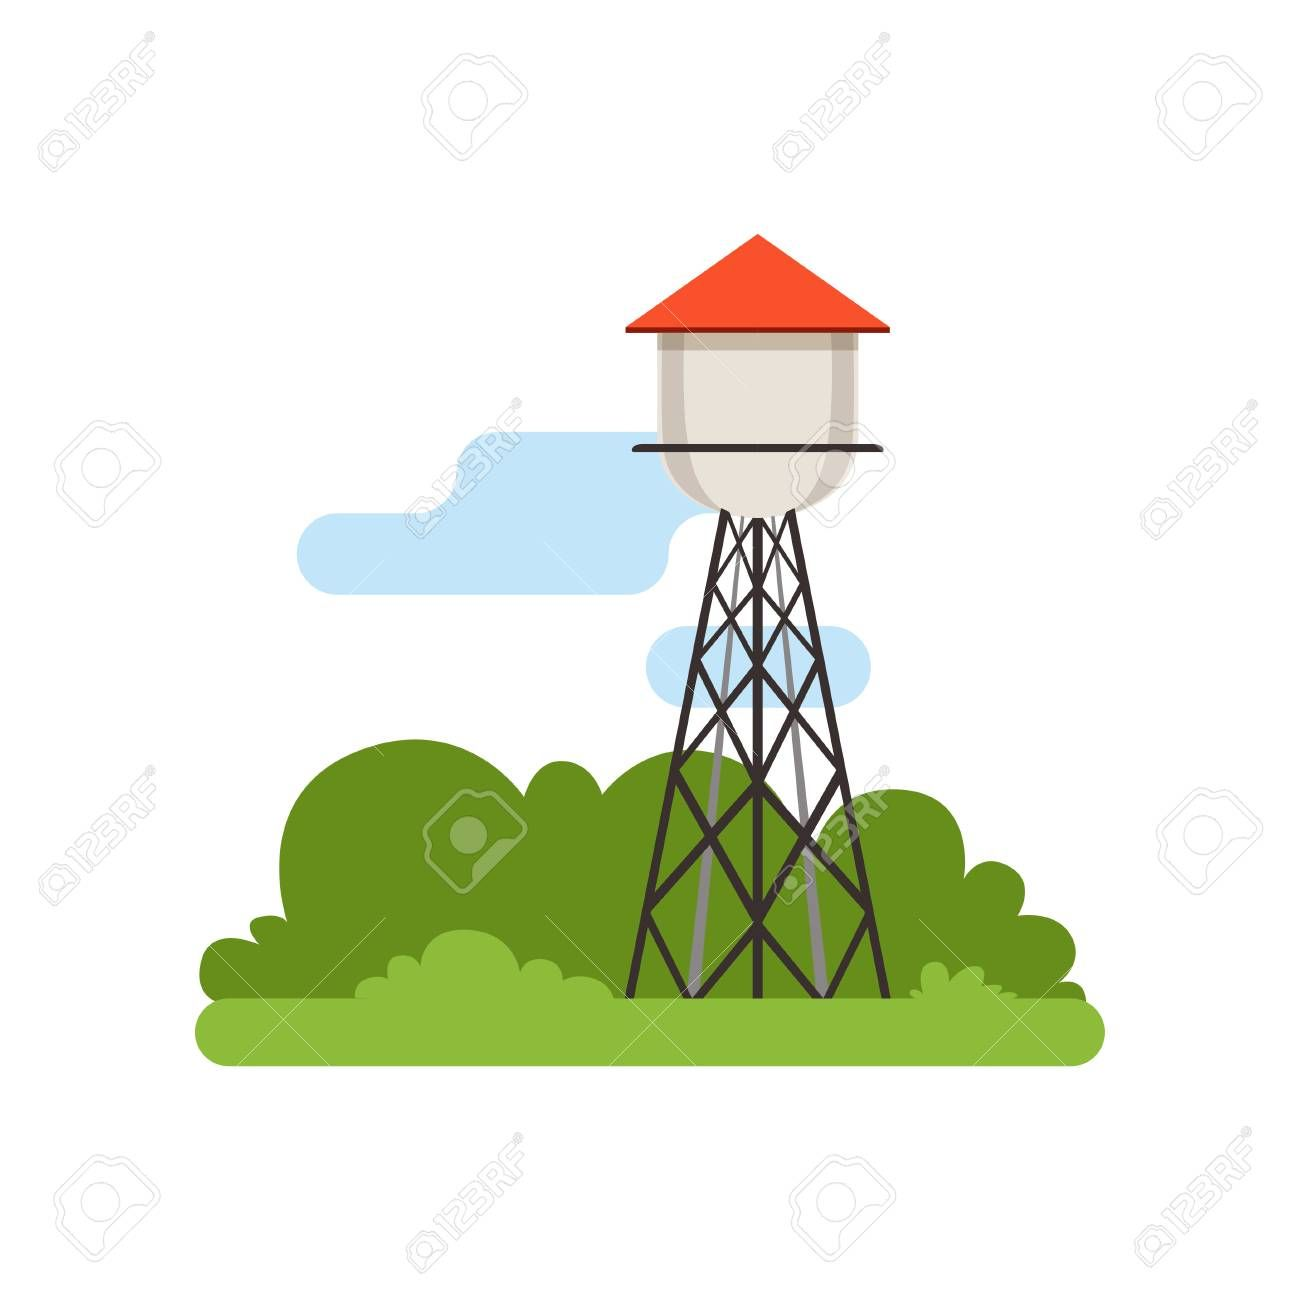 Water Tower Farm Building Countryside Life Object Rural Landscape Vector Illustration Sponsored Building Countrysid Card Templates Novelty Lamp Decor